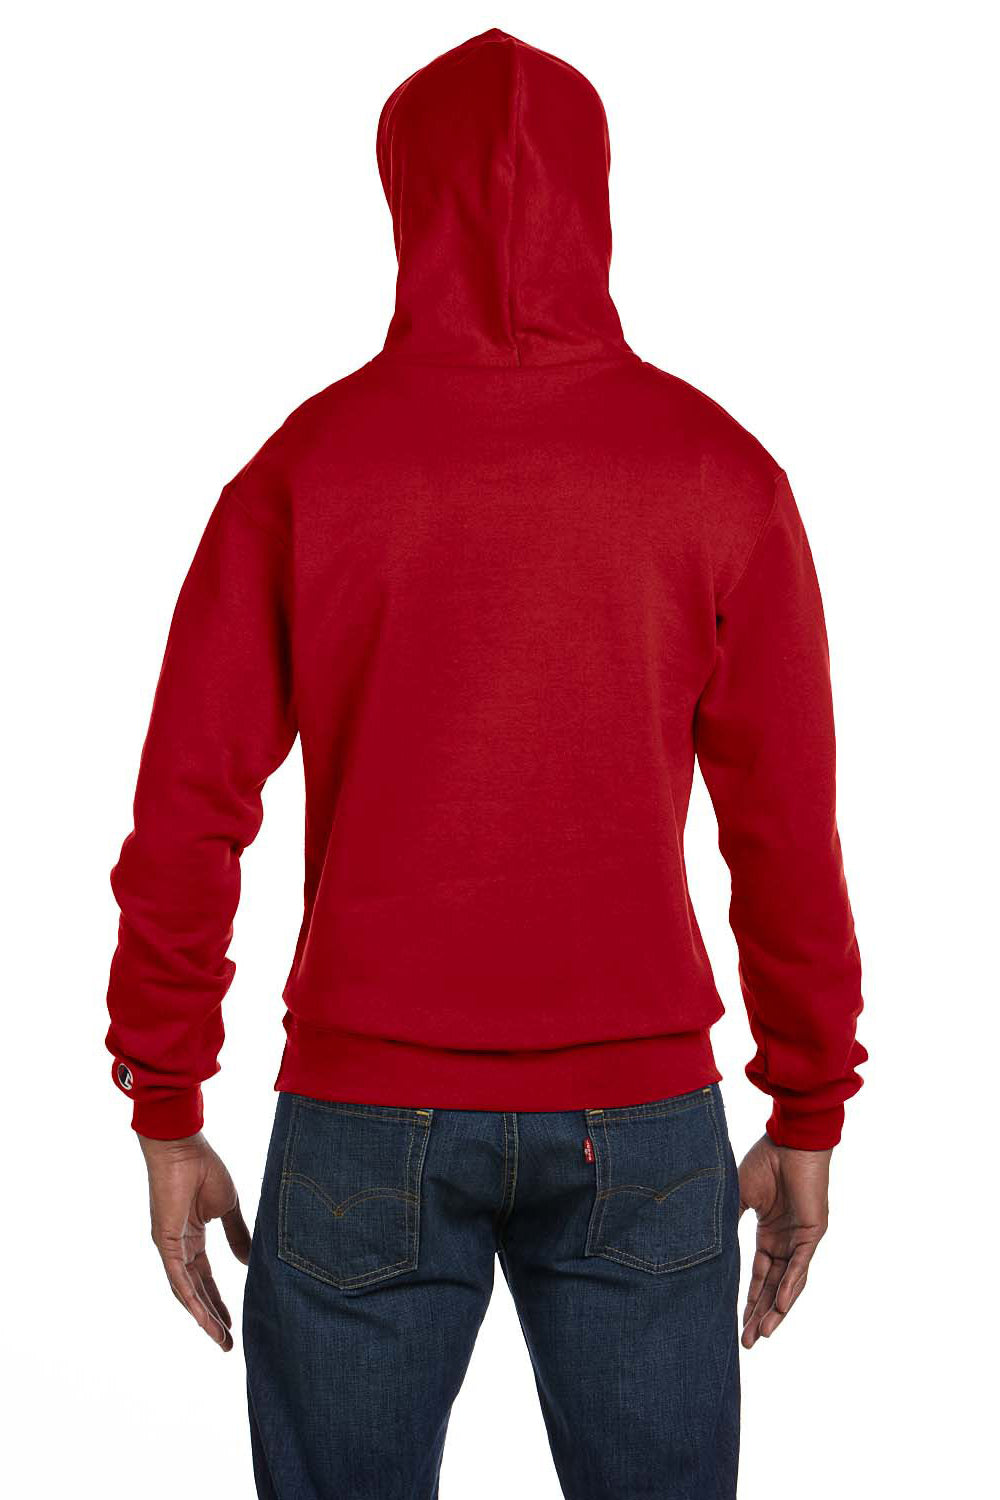 Champion S700 Mens Double Dry Eco Moisture Wicking Fleece Hooded Sweatshirt Hoodie Red Back